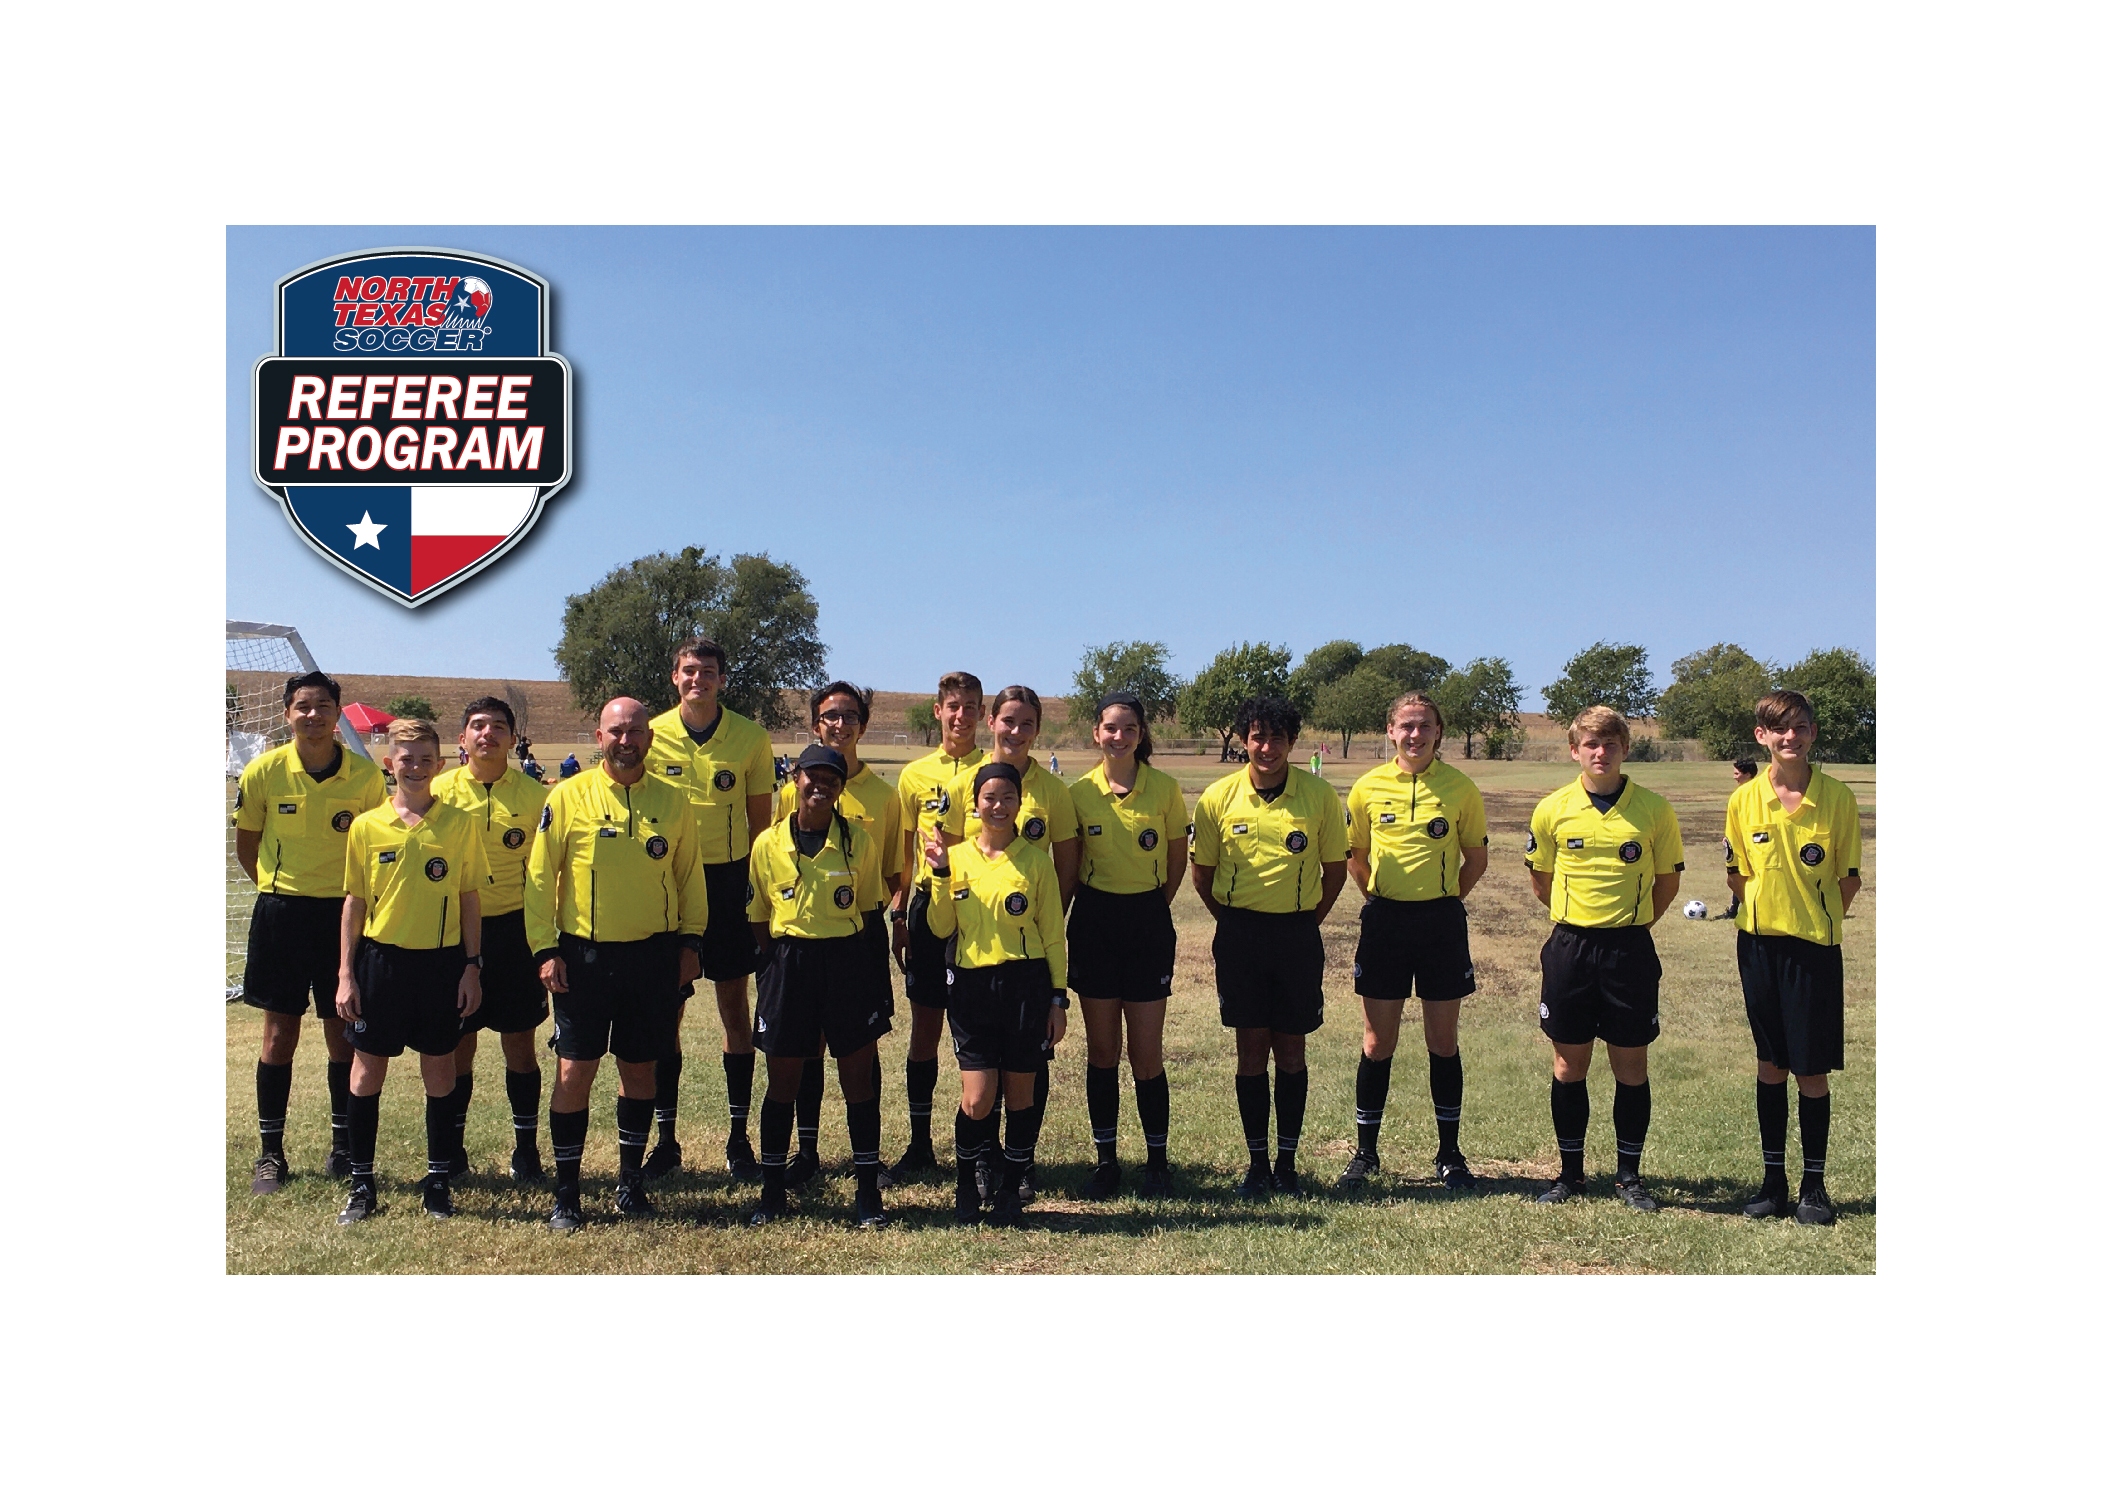 We are grateful for our hard working A+ referees.